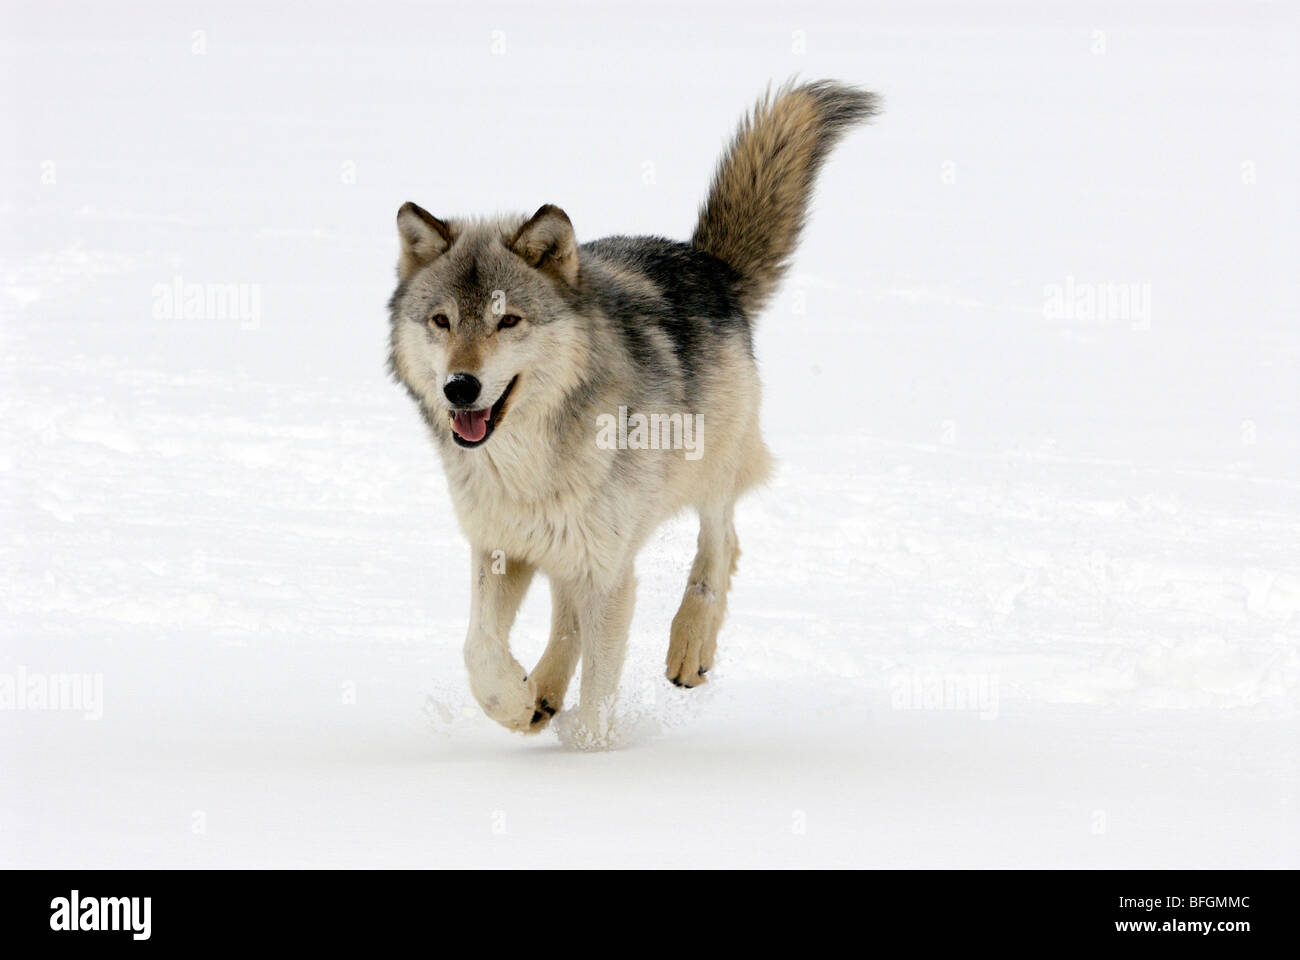 Gray wolf (Canis lupus) or timber wolf running in snow during winter. Minnesota, USA - Stock Image